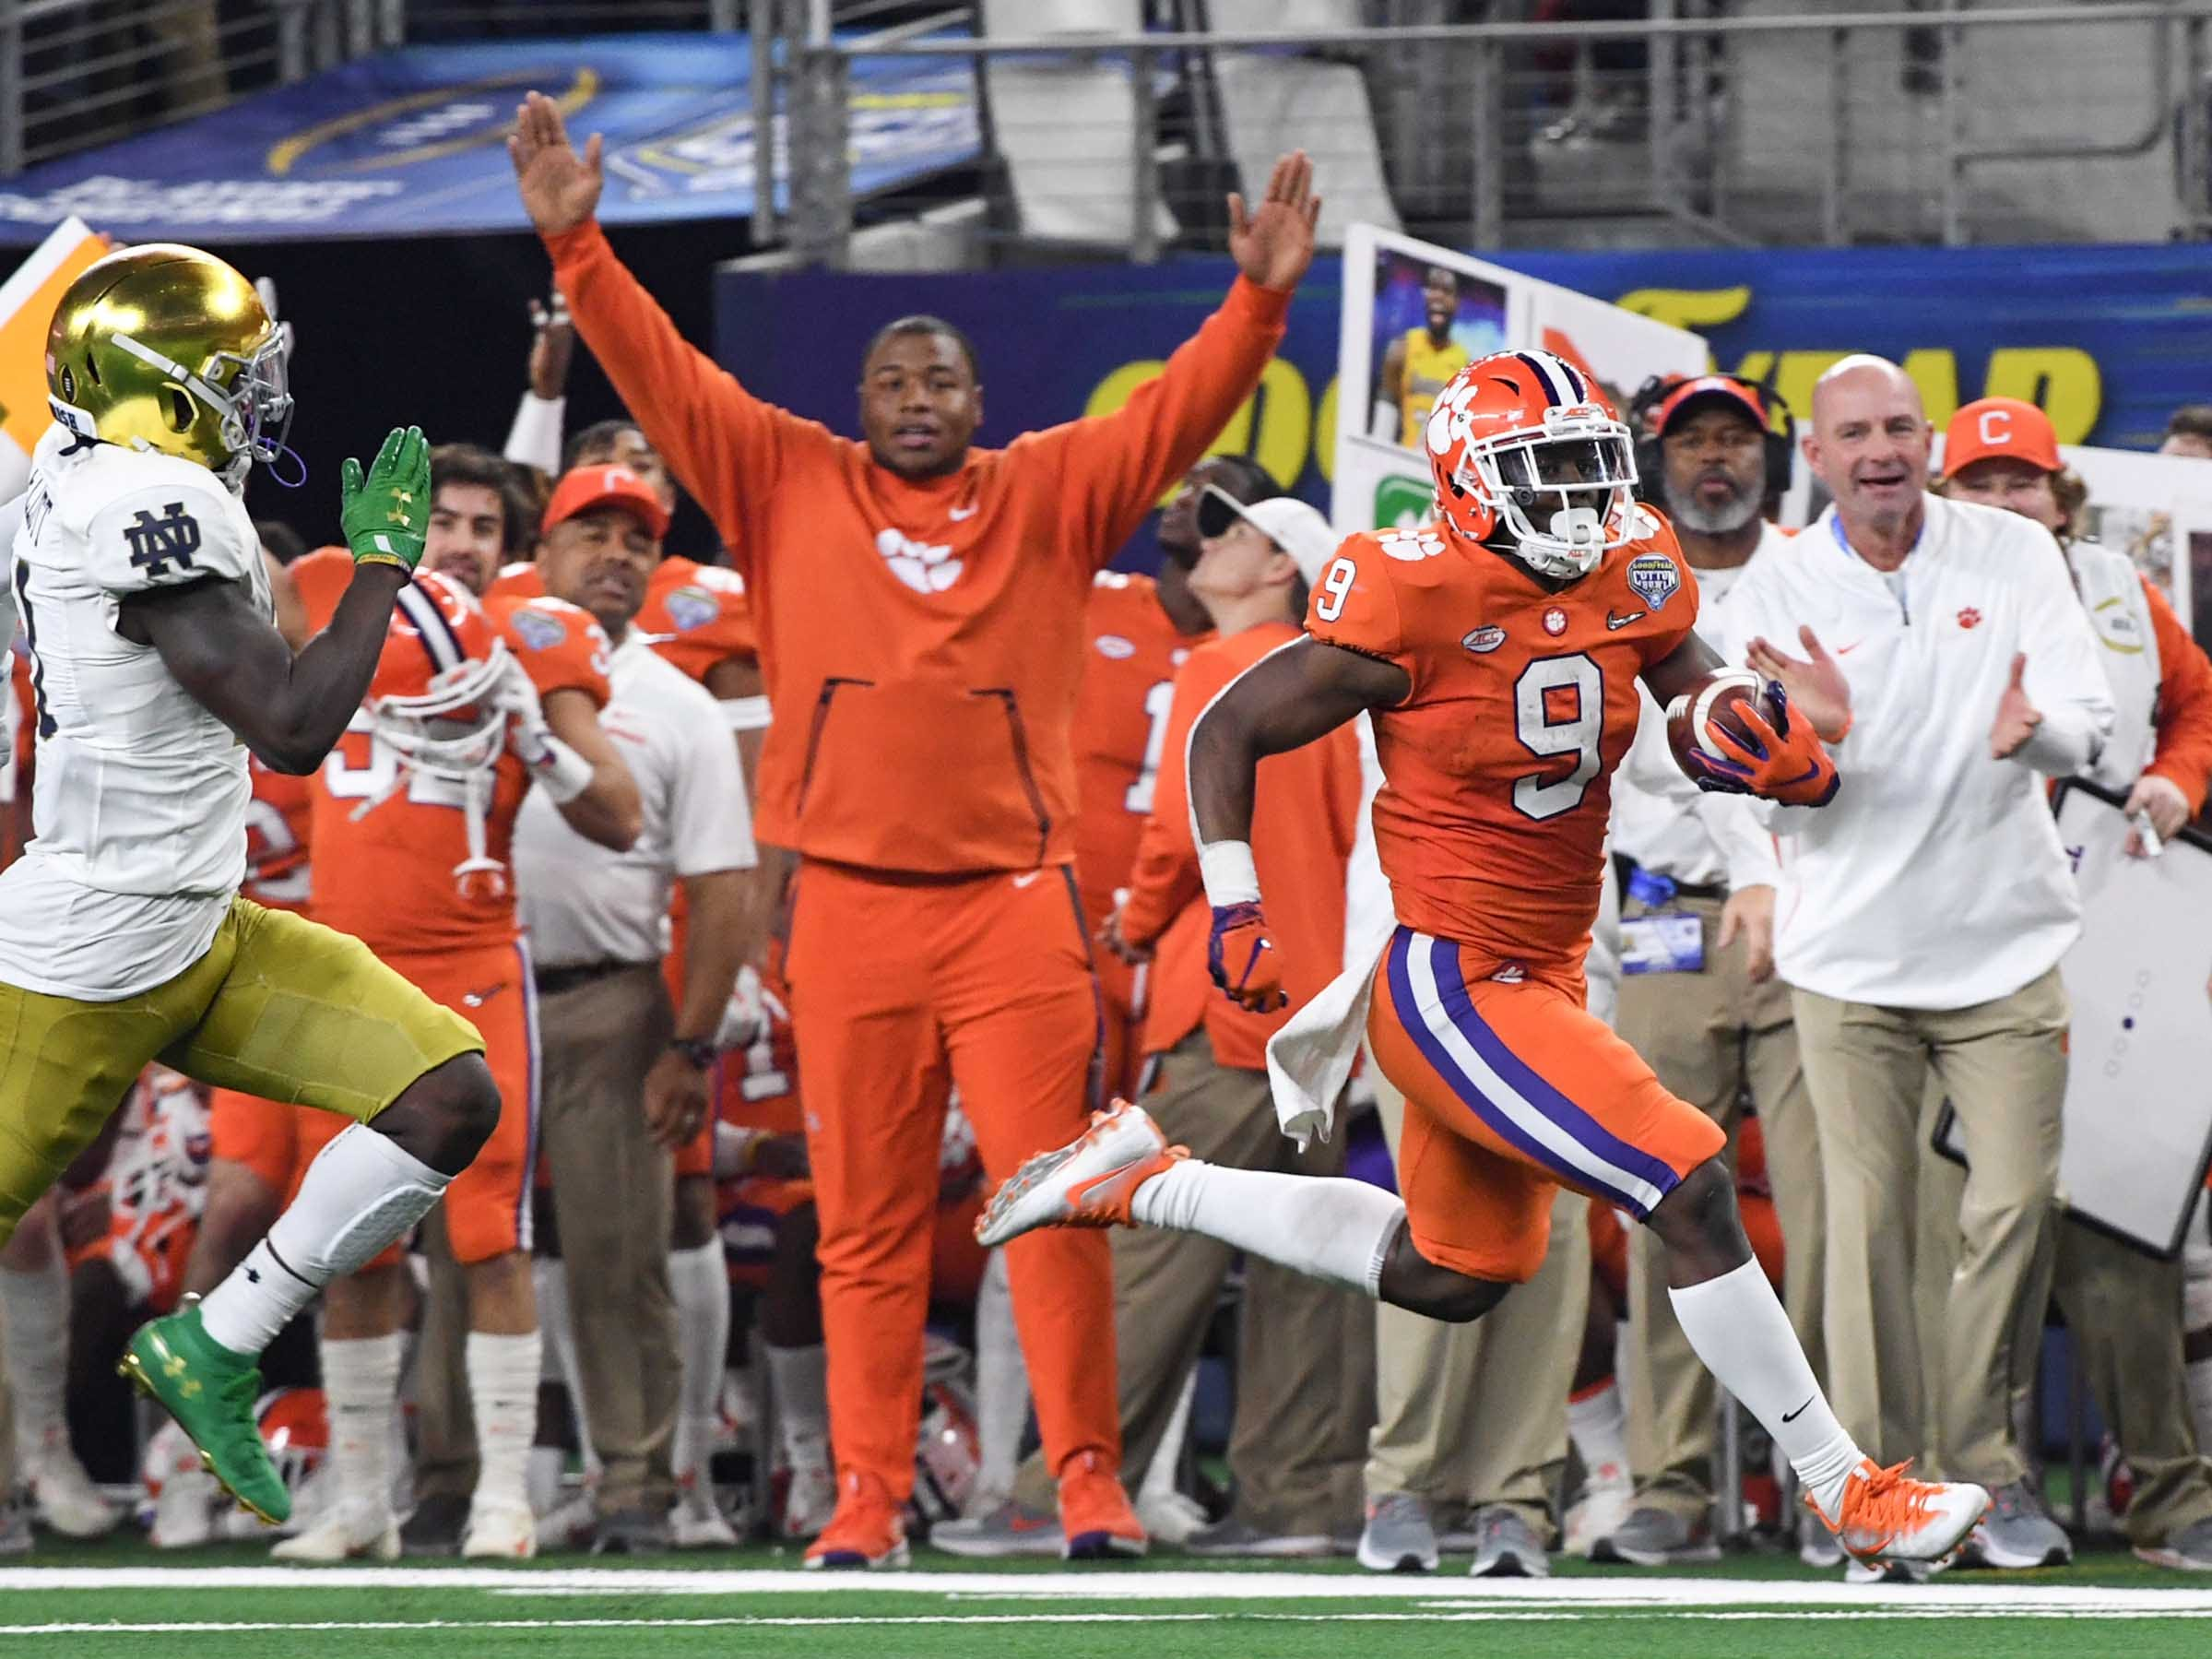 Clemson defensive lineman Dexter Lawrence (90) raises his arms on the sidelines as Clemson running back Travis Etienne (9) runs 61-yards during the third quarter of the College Football Playoff Semifinal at the Goodyear Cotton Bowl Classic at AT&T Stadium in Arlington, Texas Saturday, December 29, 2018.